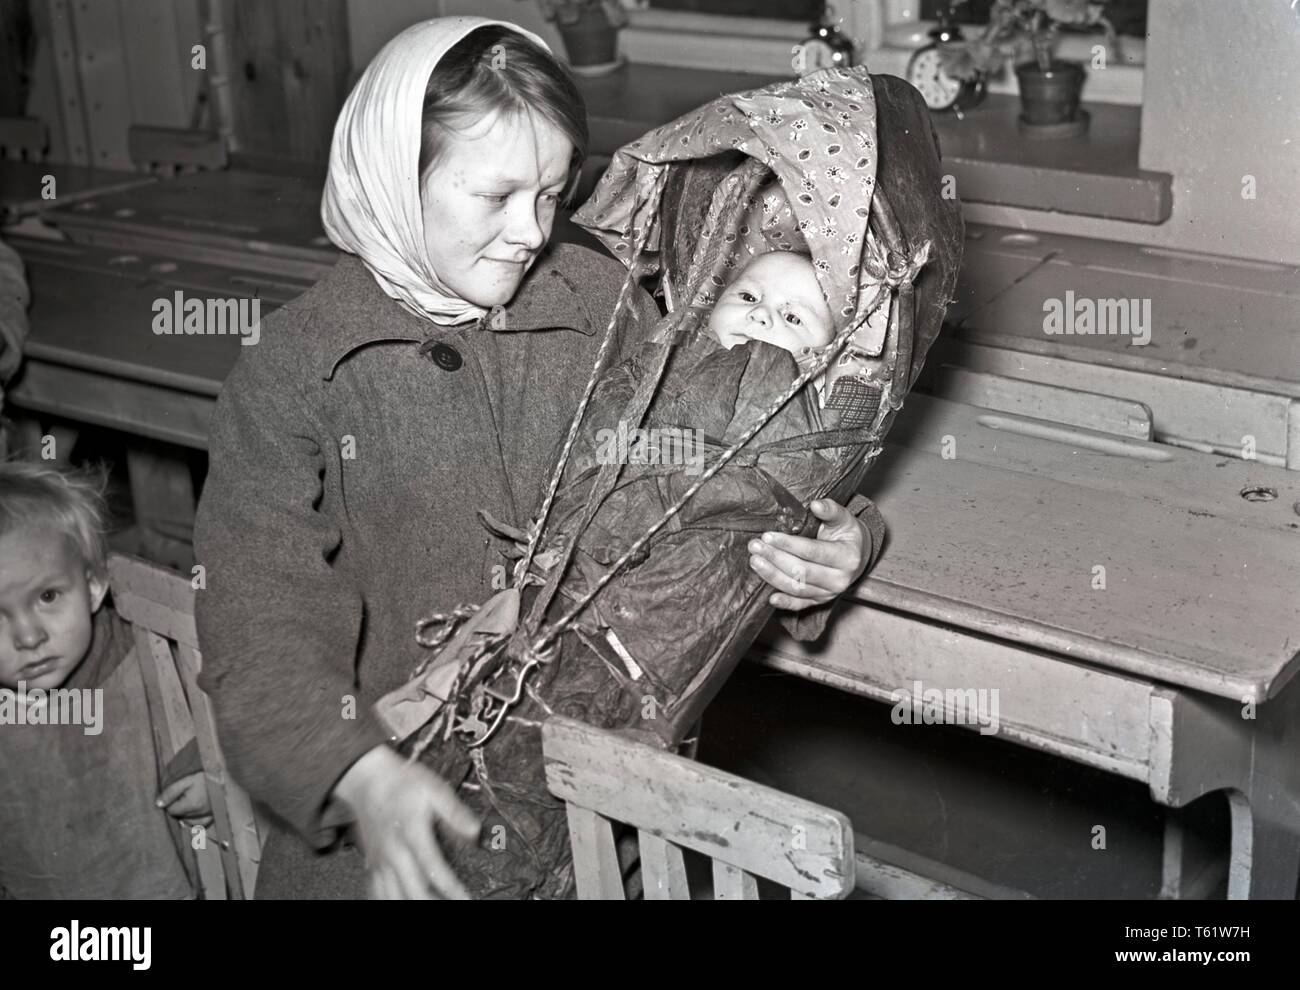 The Winter War. A military conflict between the Soviet union and Finland. It began with a Soviet invasion on november 1939 when Soviet infantery crossed the border on the Karelian Isthmus. A young mother and her baby waiting evacuated from the city.  January 1940. Photo Kristoffersson ref 98-12 - Stock Image